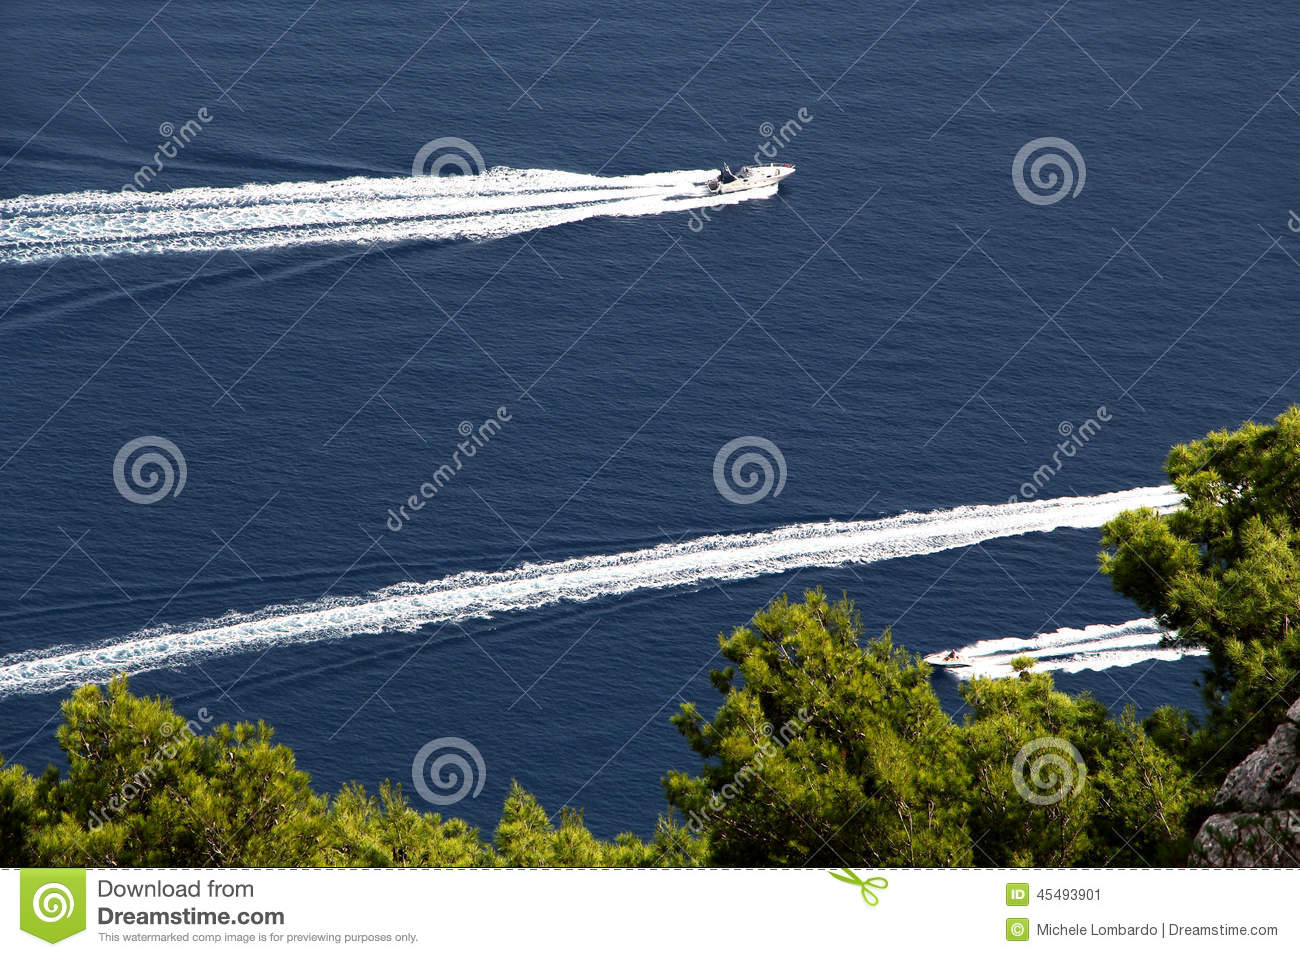 Three motorboats against a blue sea and trees